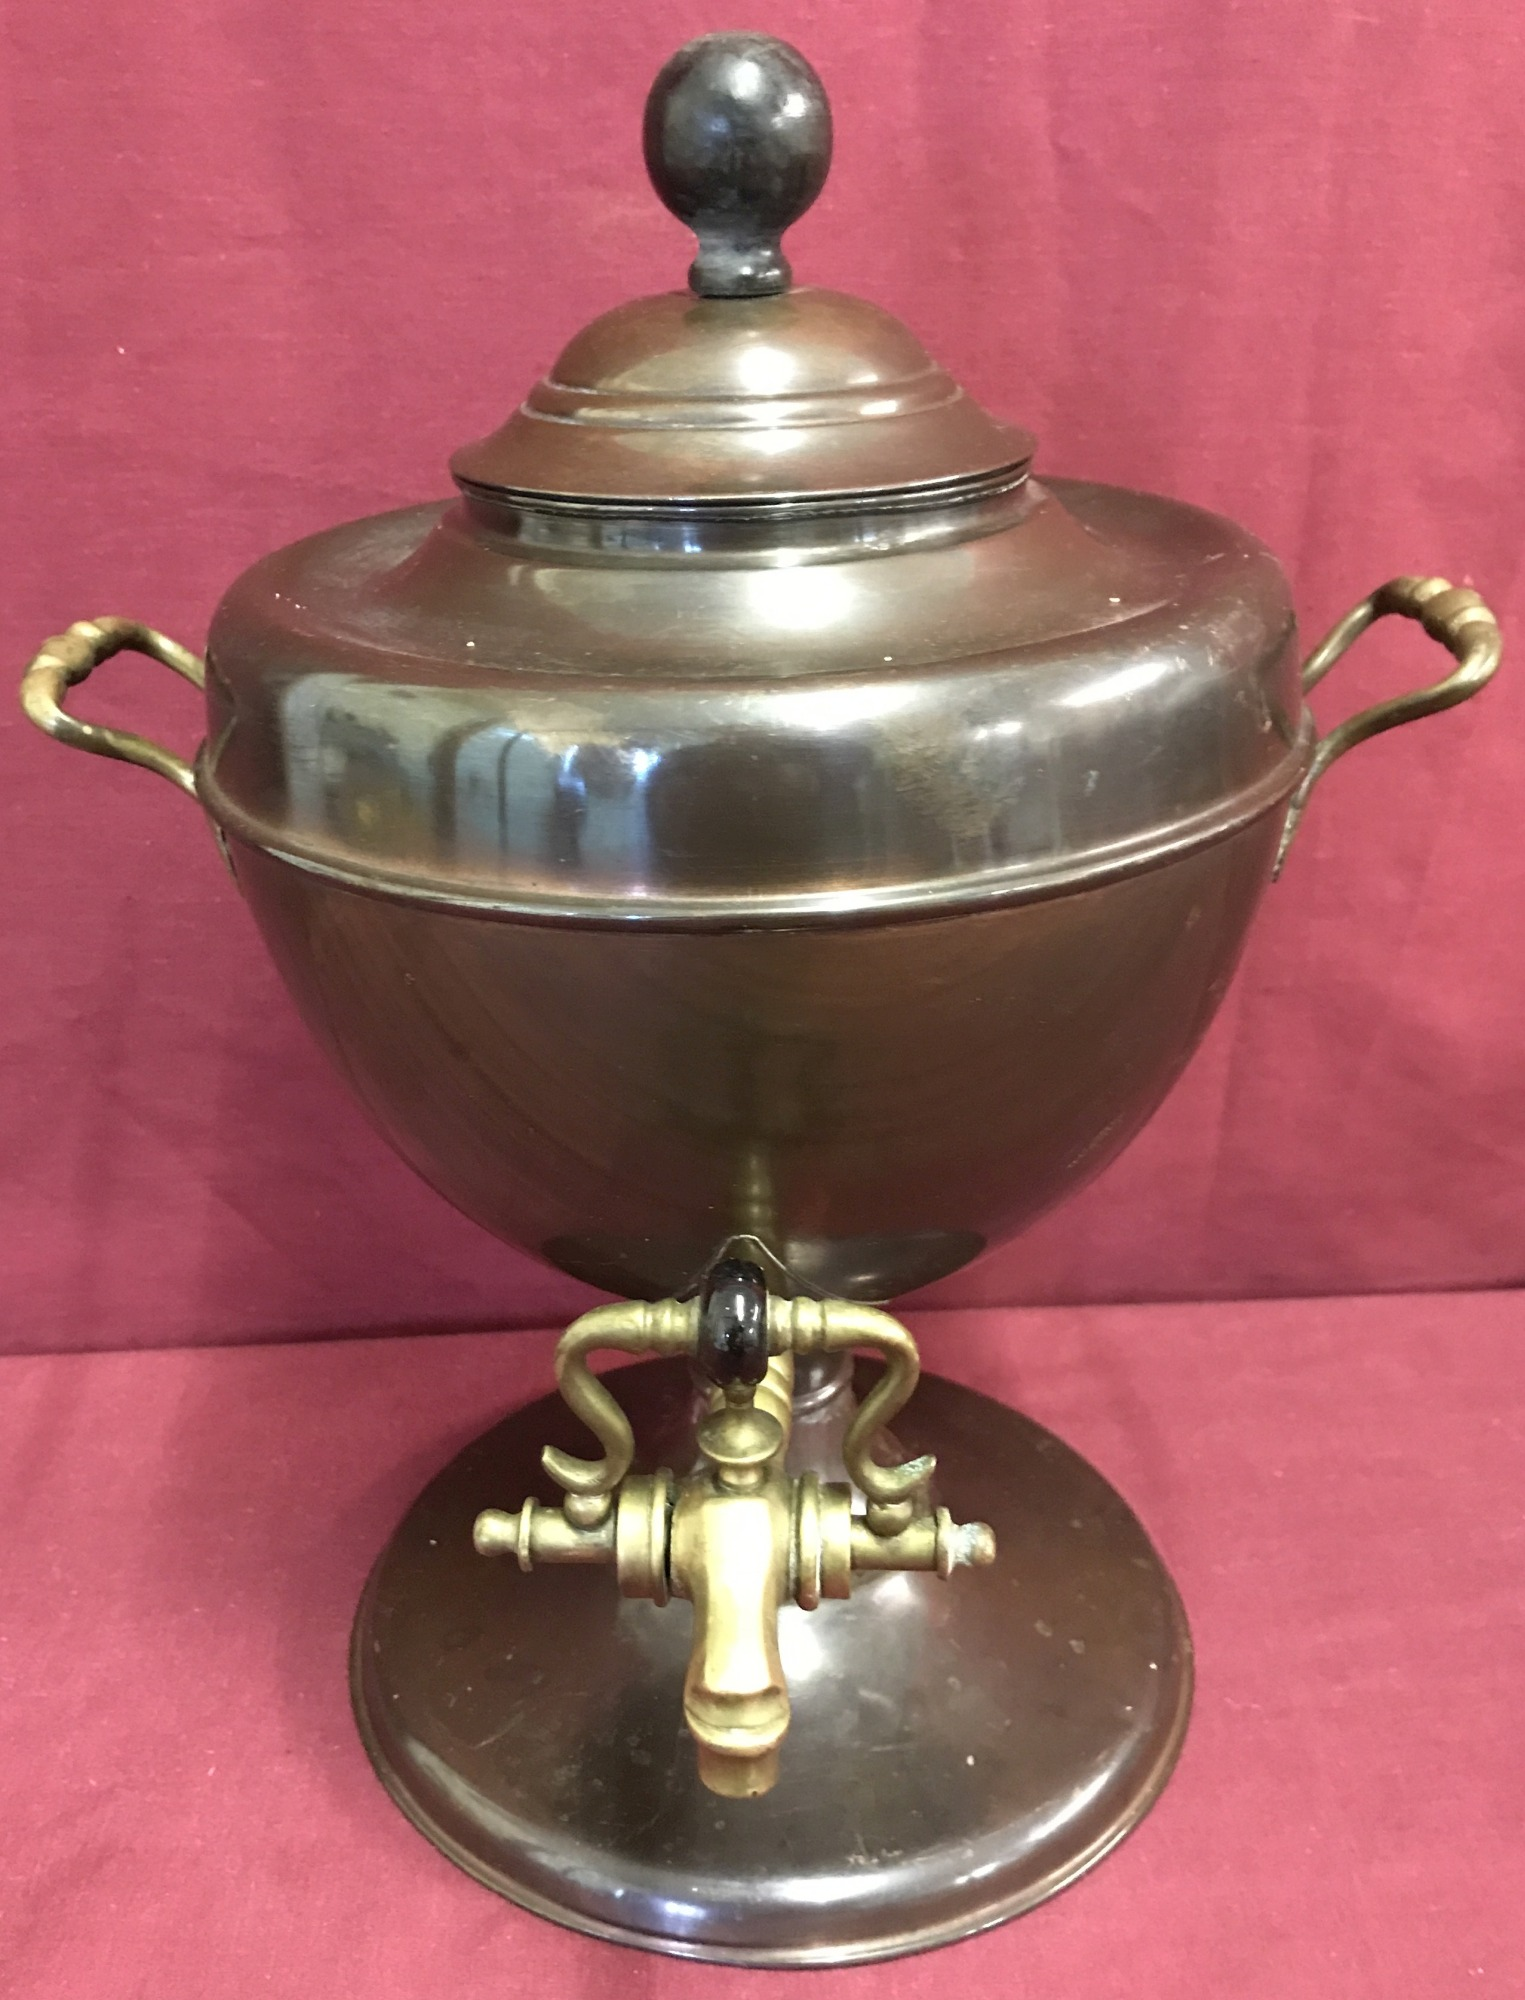 A vintage copper samovar with brass handles and tap and wooden finial.